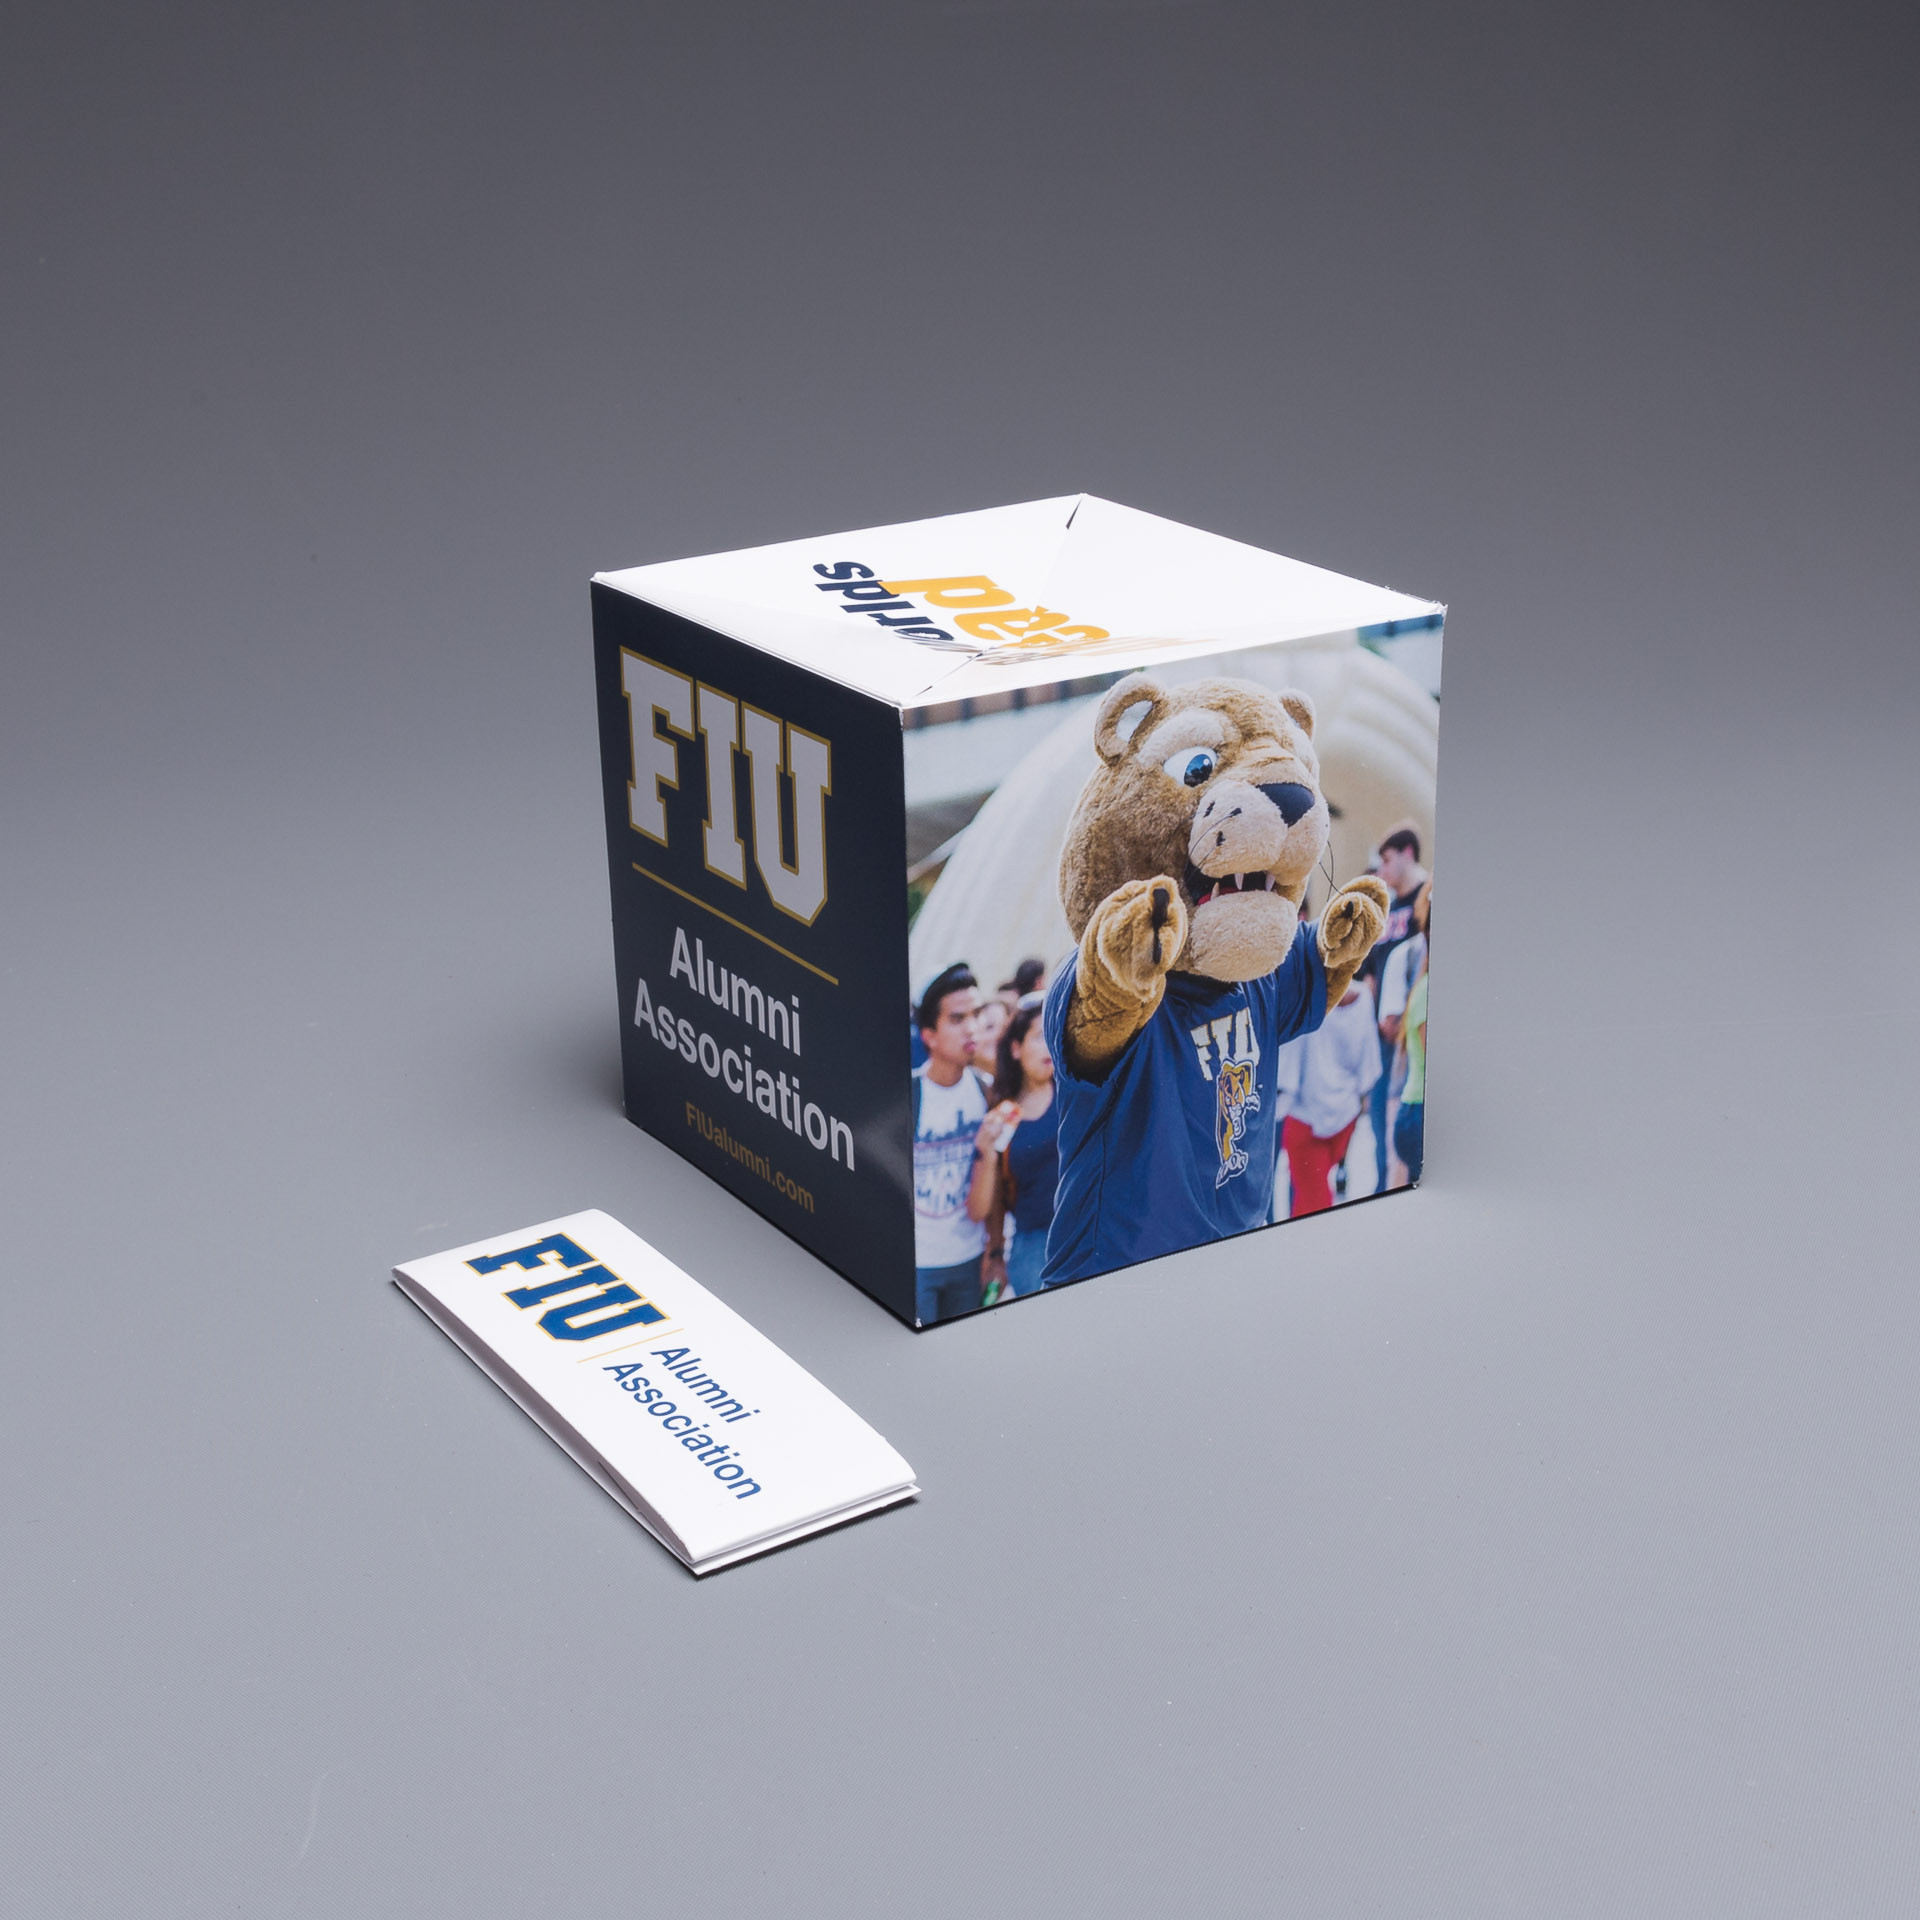 FIU Captures the Attention of Alumni with the Pop Up Cube